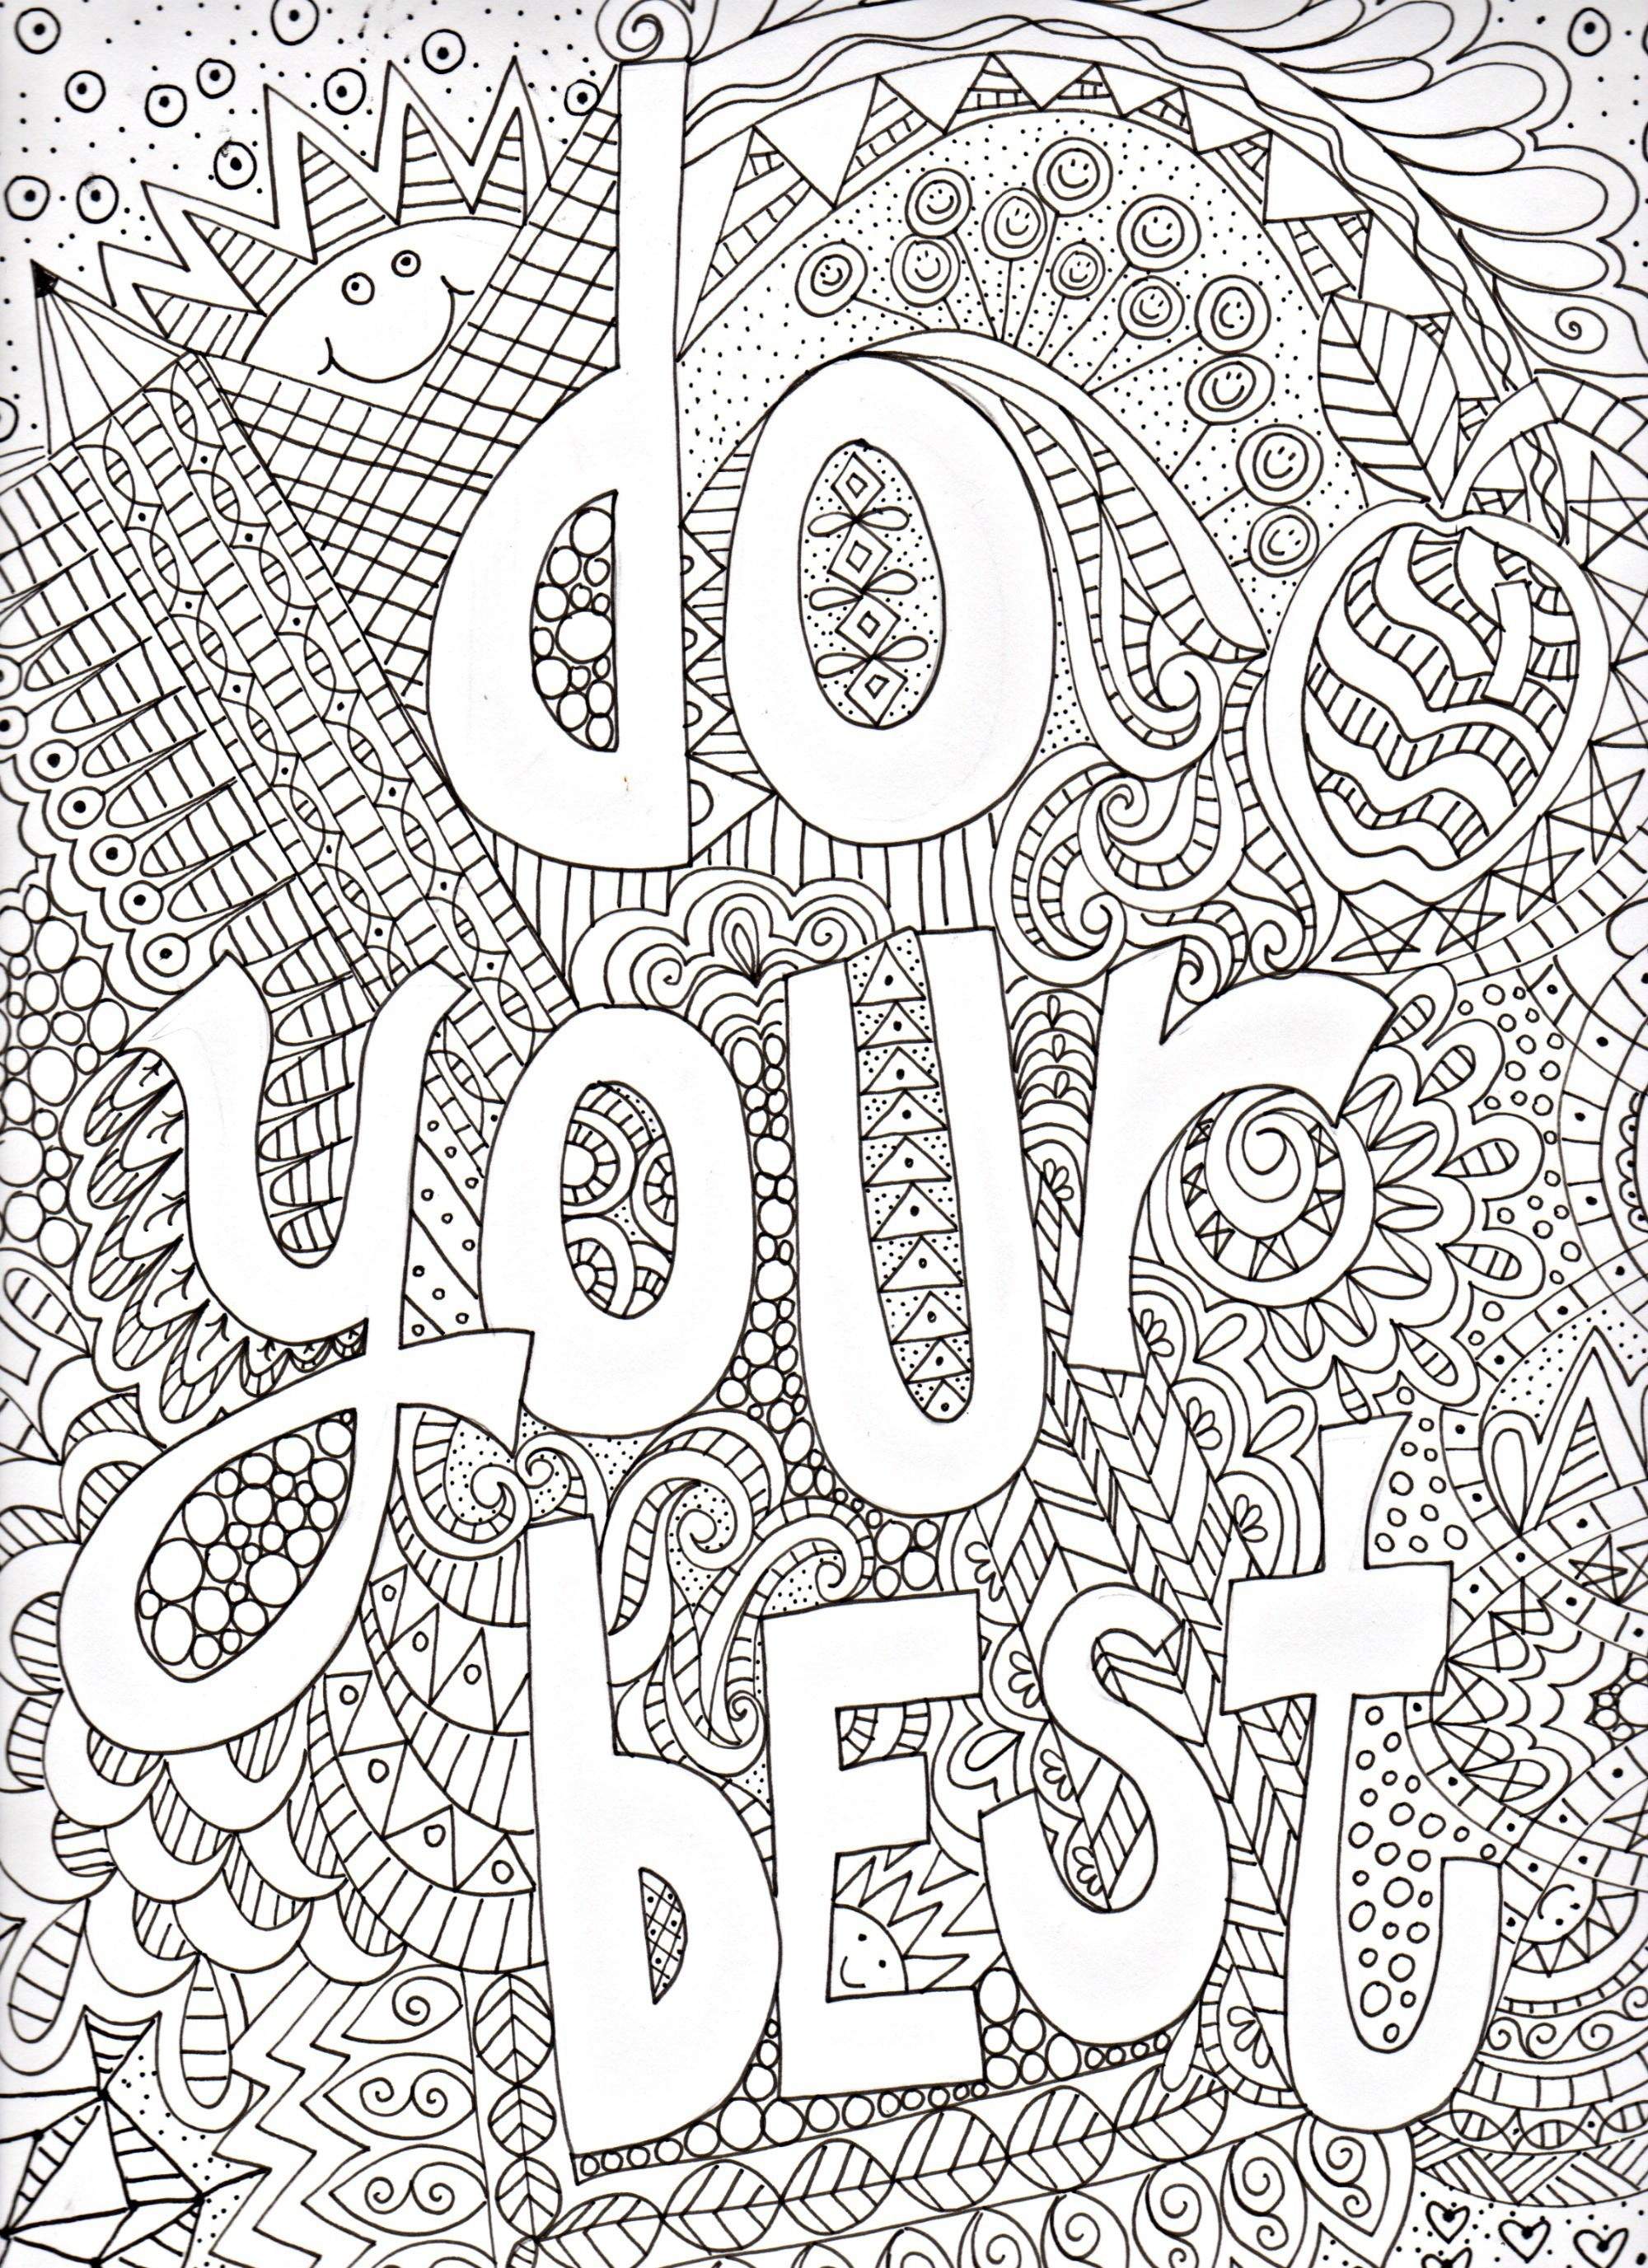 Quote Coloring Pages Bloodbrothers Printable Free Coloring Books Collection Of Quote Coloring Pages Coloringsuite Download